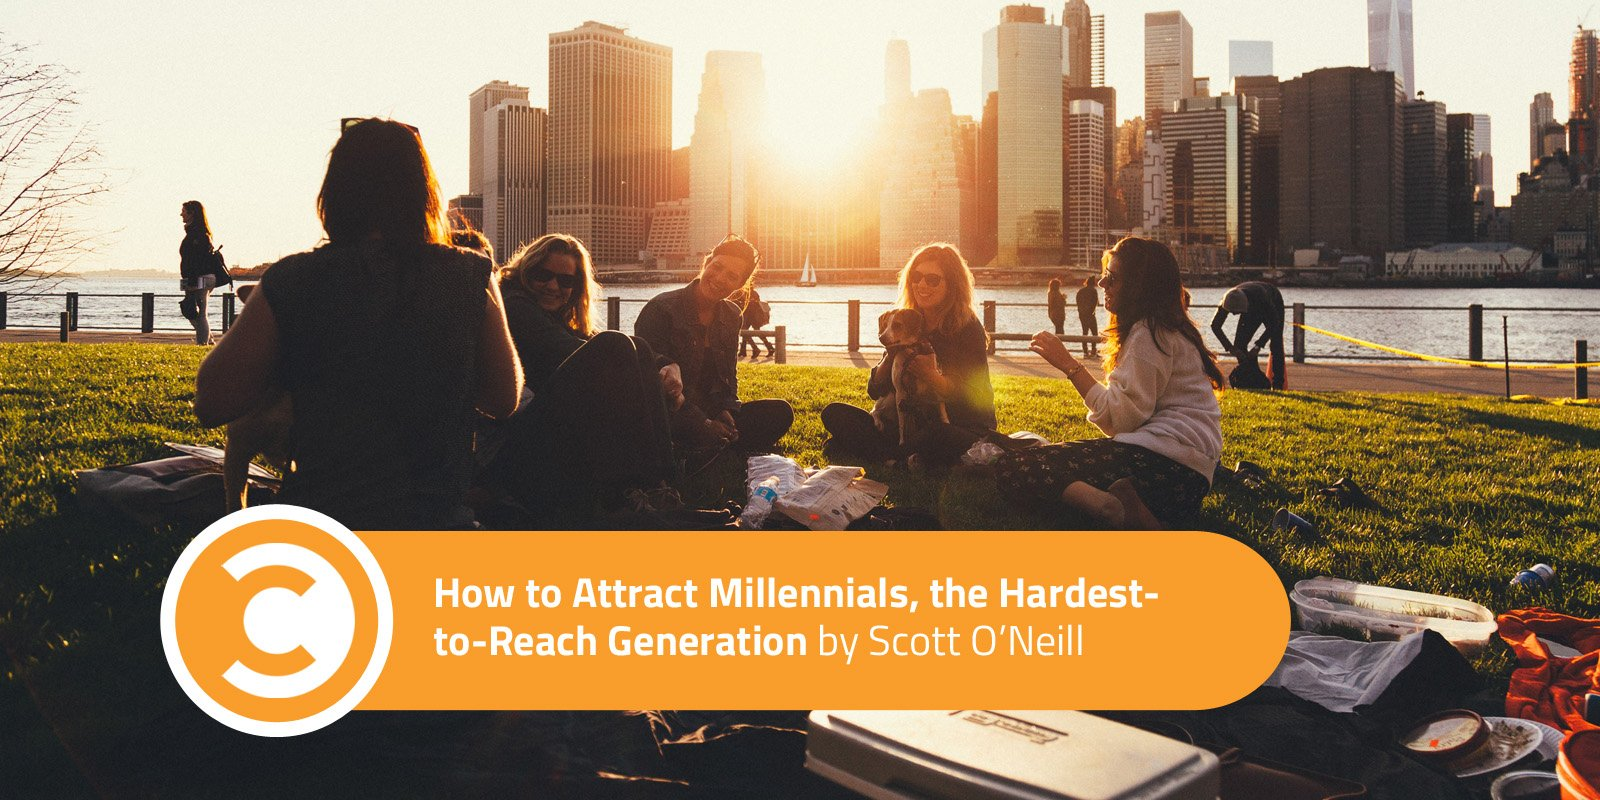 How to Attract Millennials, the Hardest-to-Reach Generation